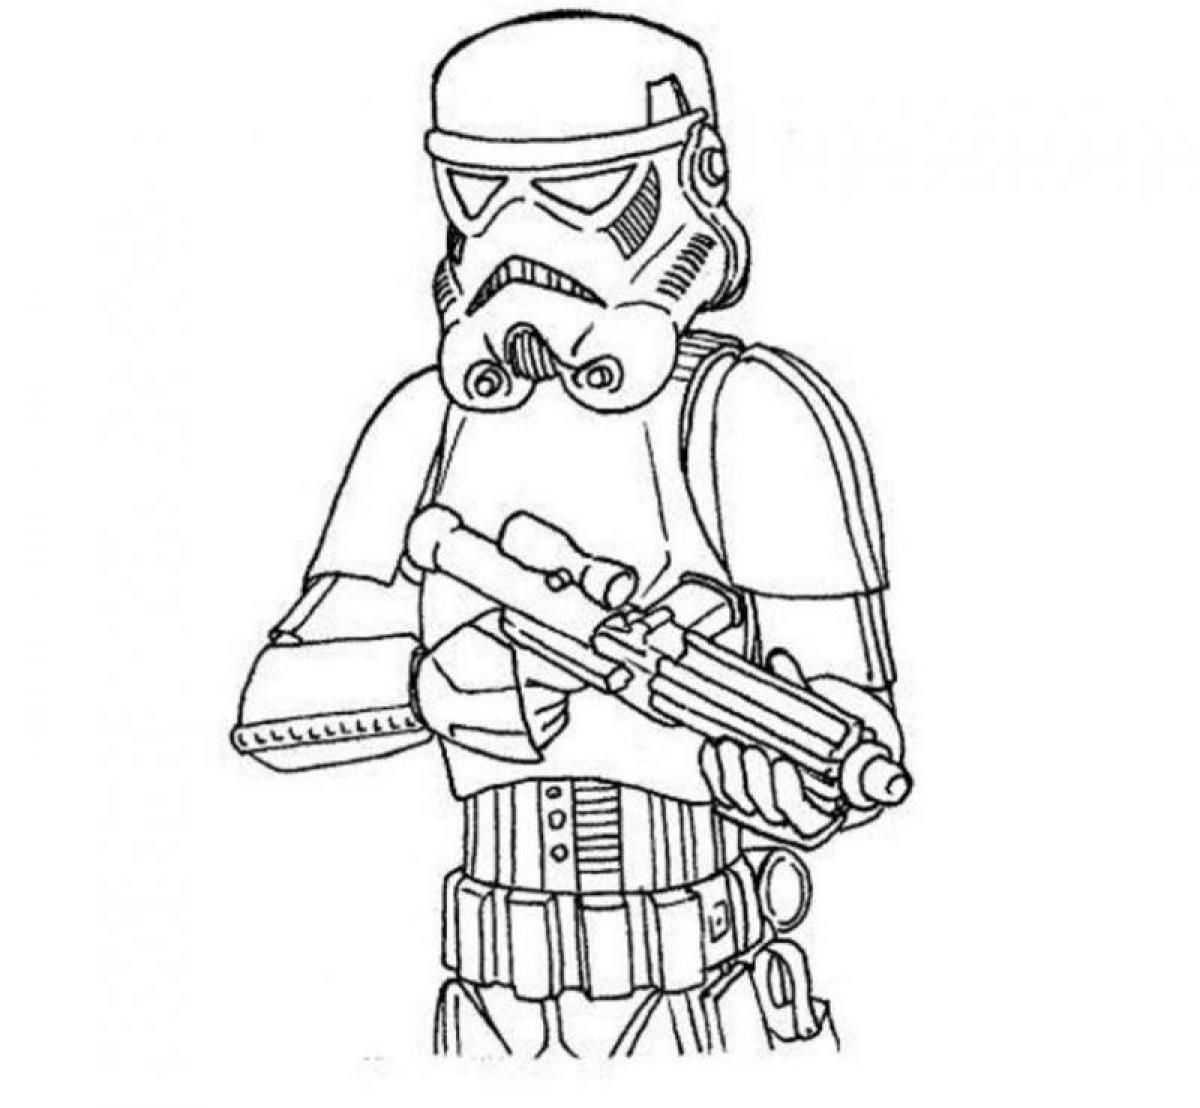 1200x1108 Star Wars Stormtrooper Coloring Page Coloring Kids